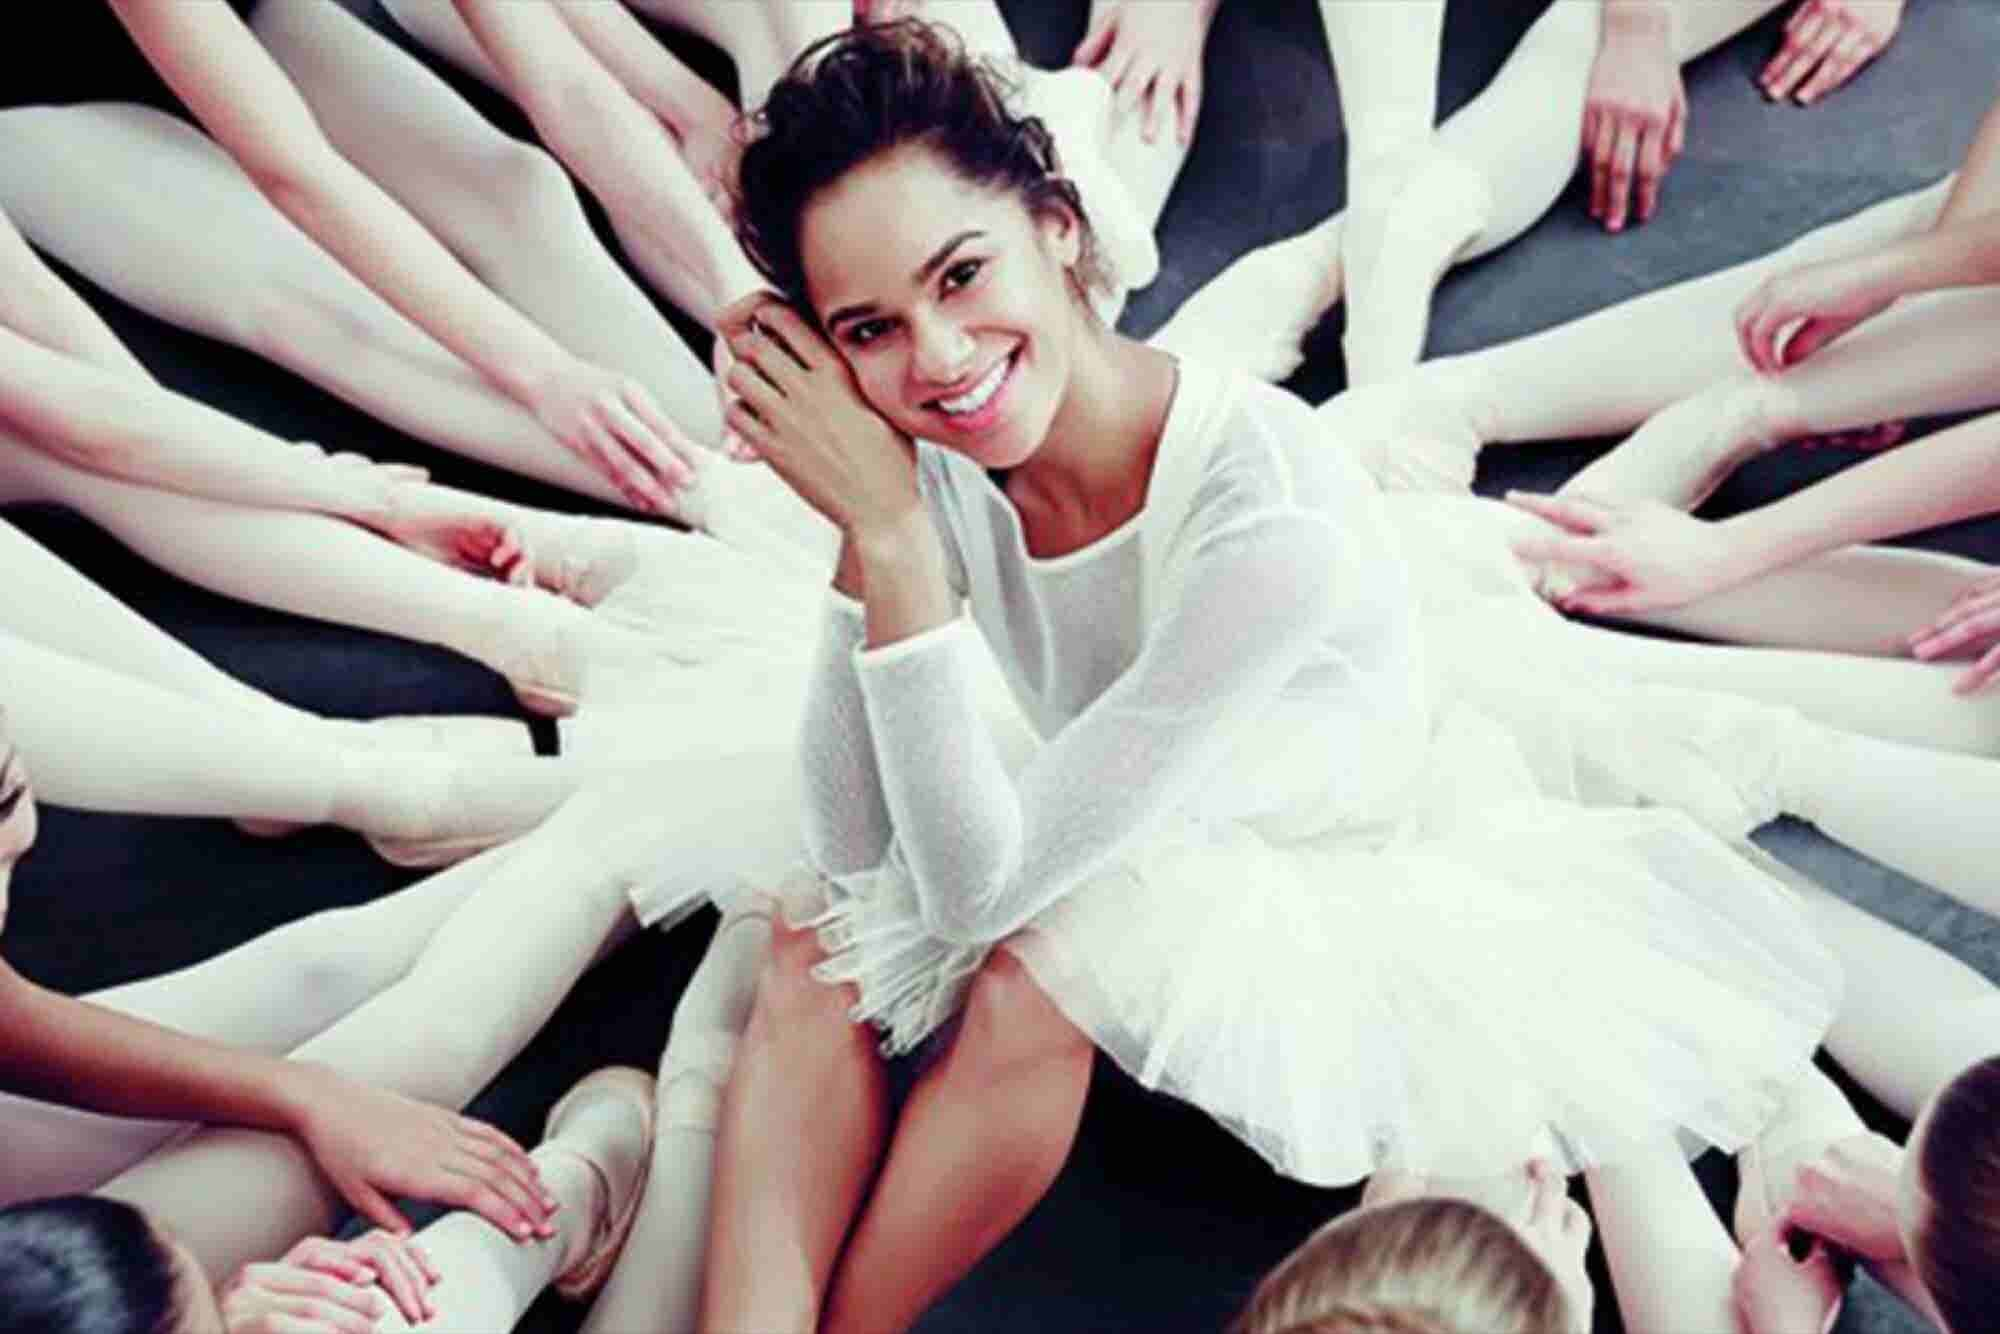 What You Can Learn From Misty Copeland About Achieving the Impossible